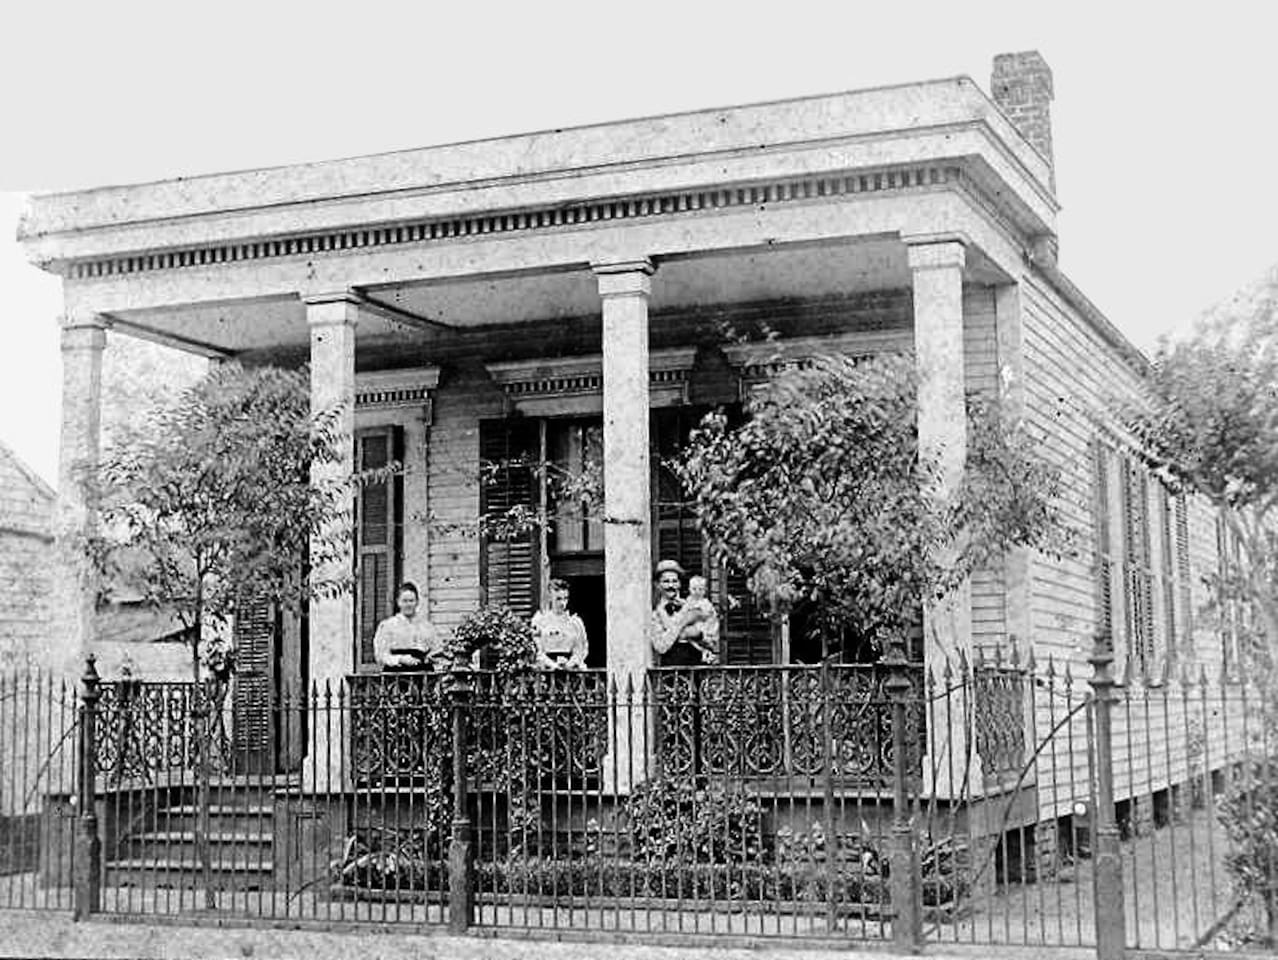 The original house, built along the Mississippi River in 1850, and some of its earliest inhabitants, the Patterson Family.